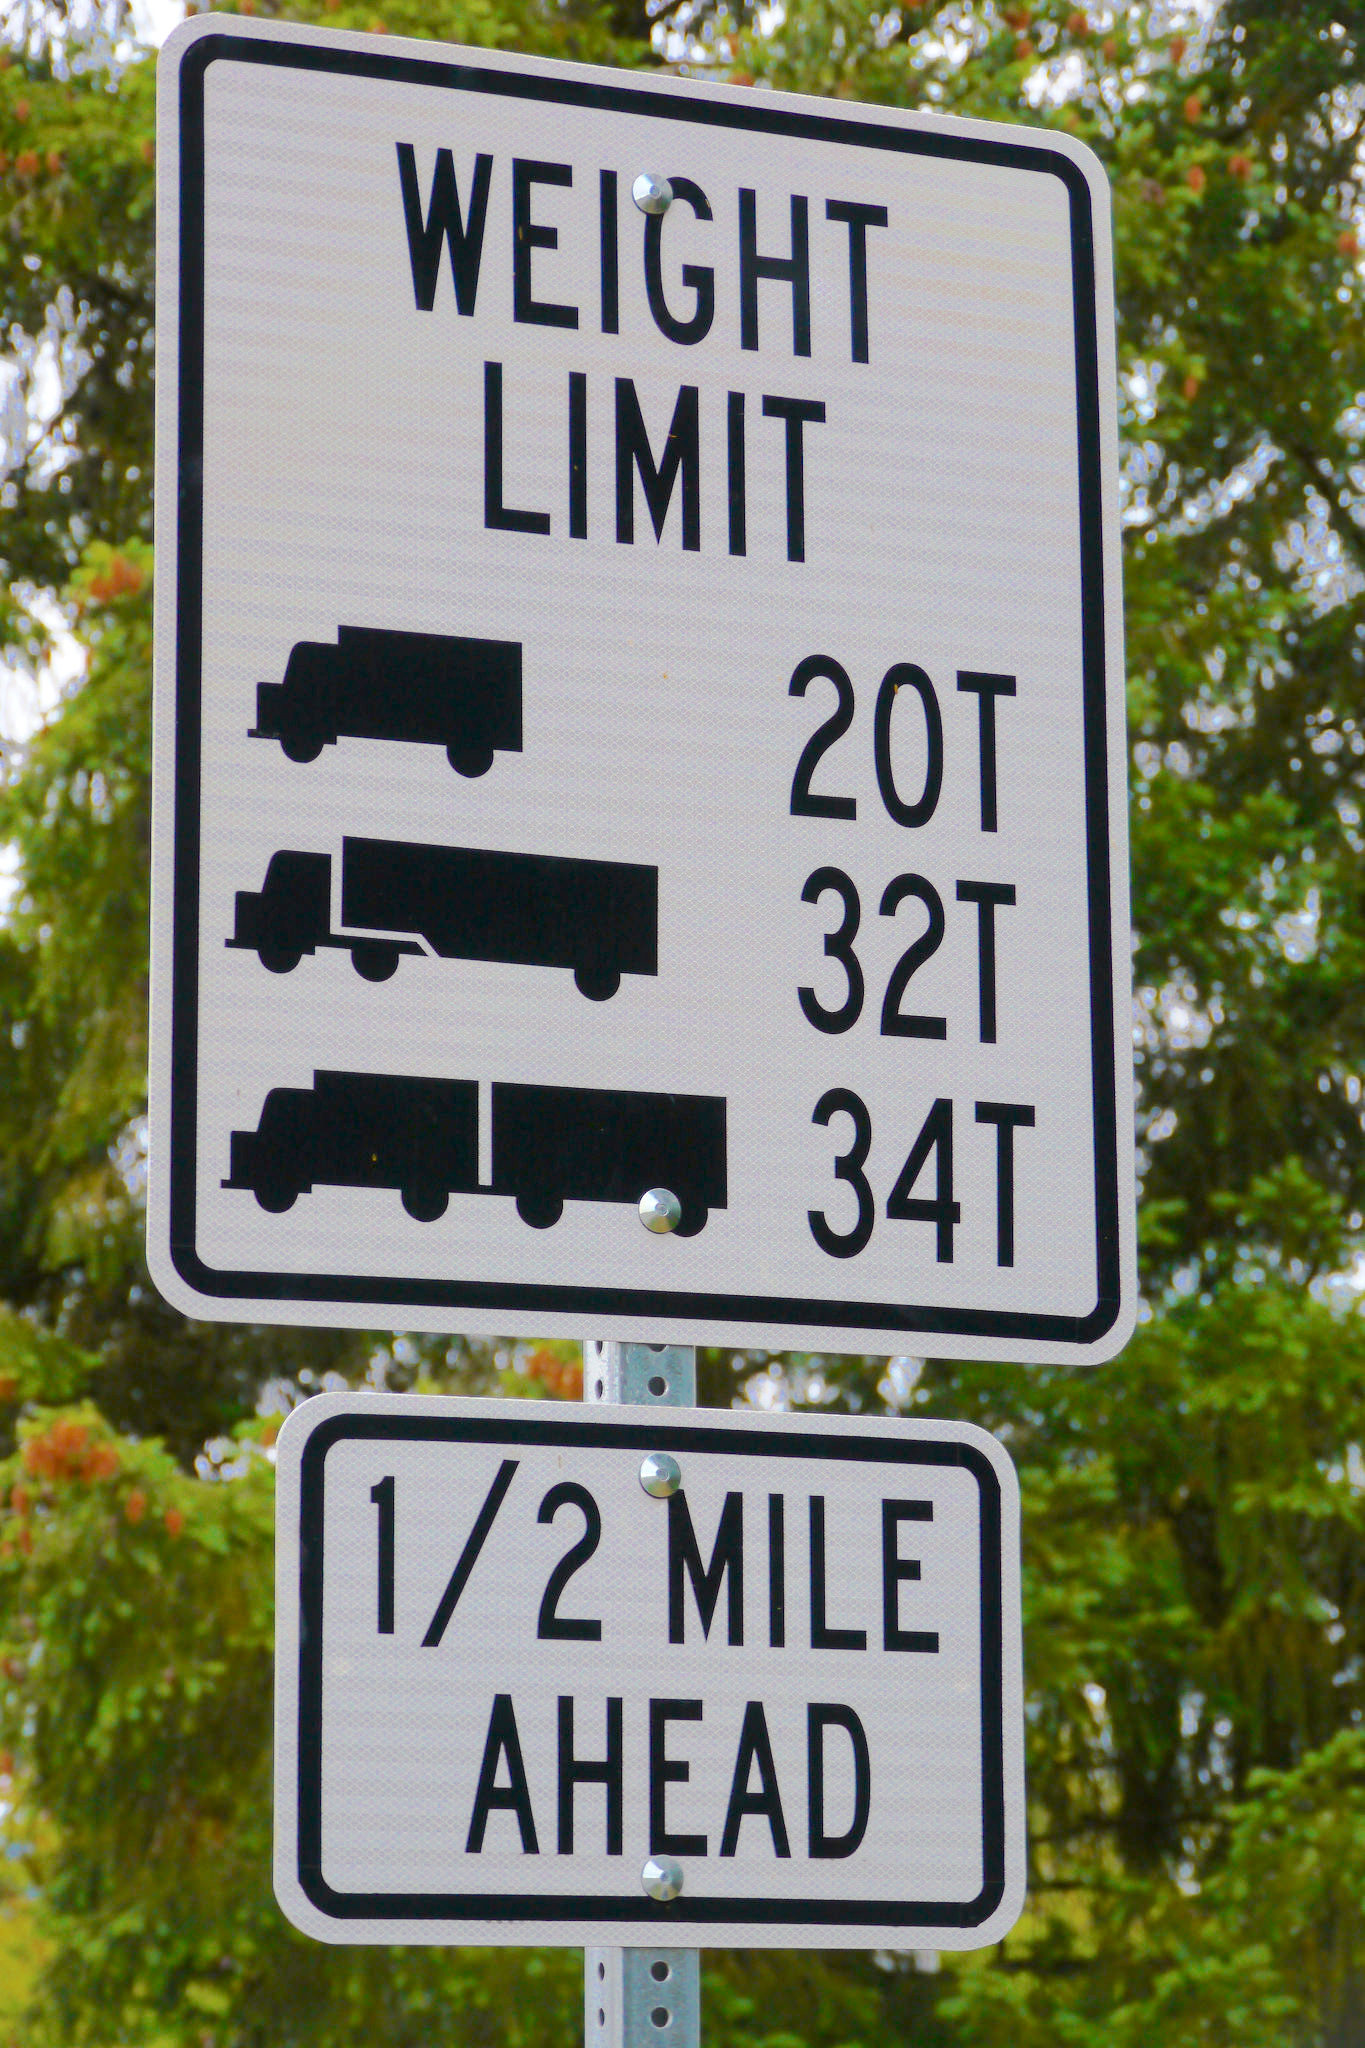 PHOTO CREDIT:  WEIGHT LIMIT SIGN  BY   R  ICK OBST  . LICENSED UNDER   CC BY 2.0  .